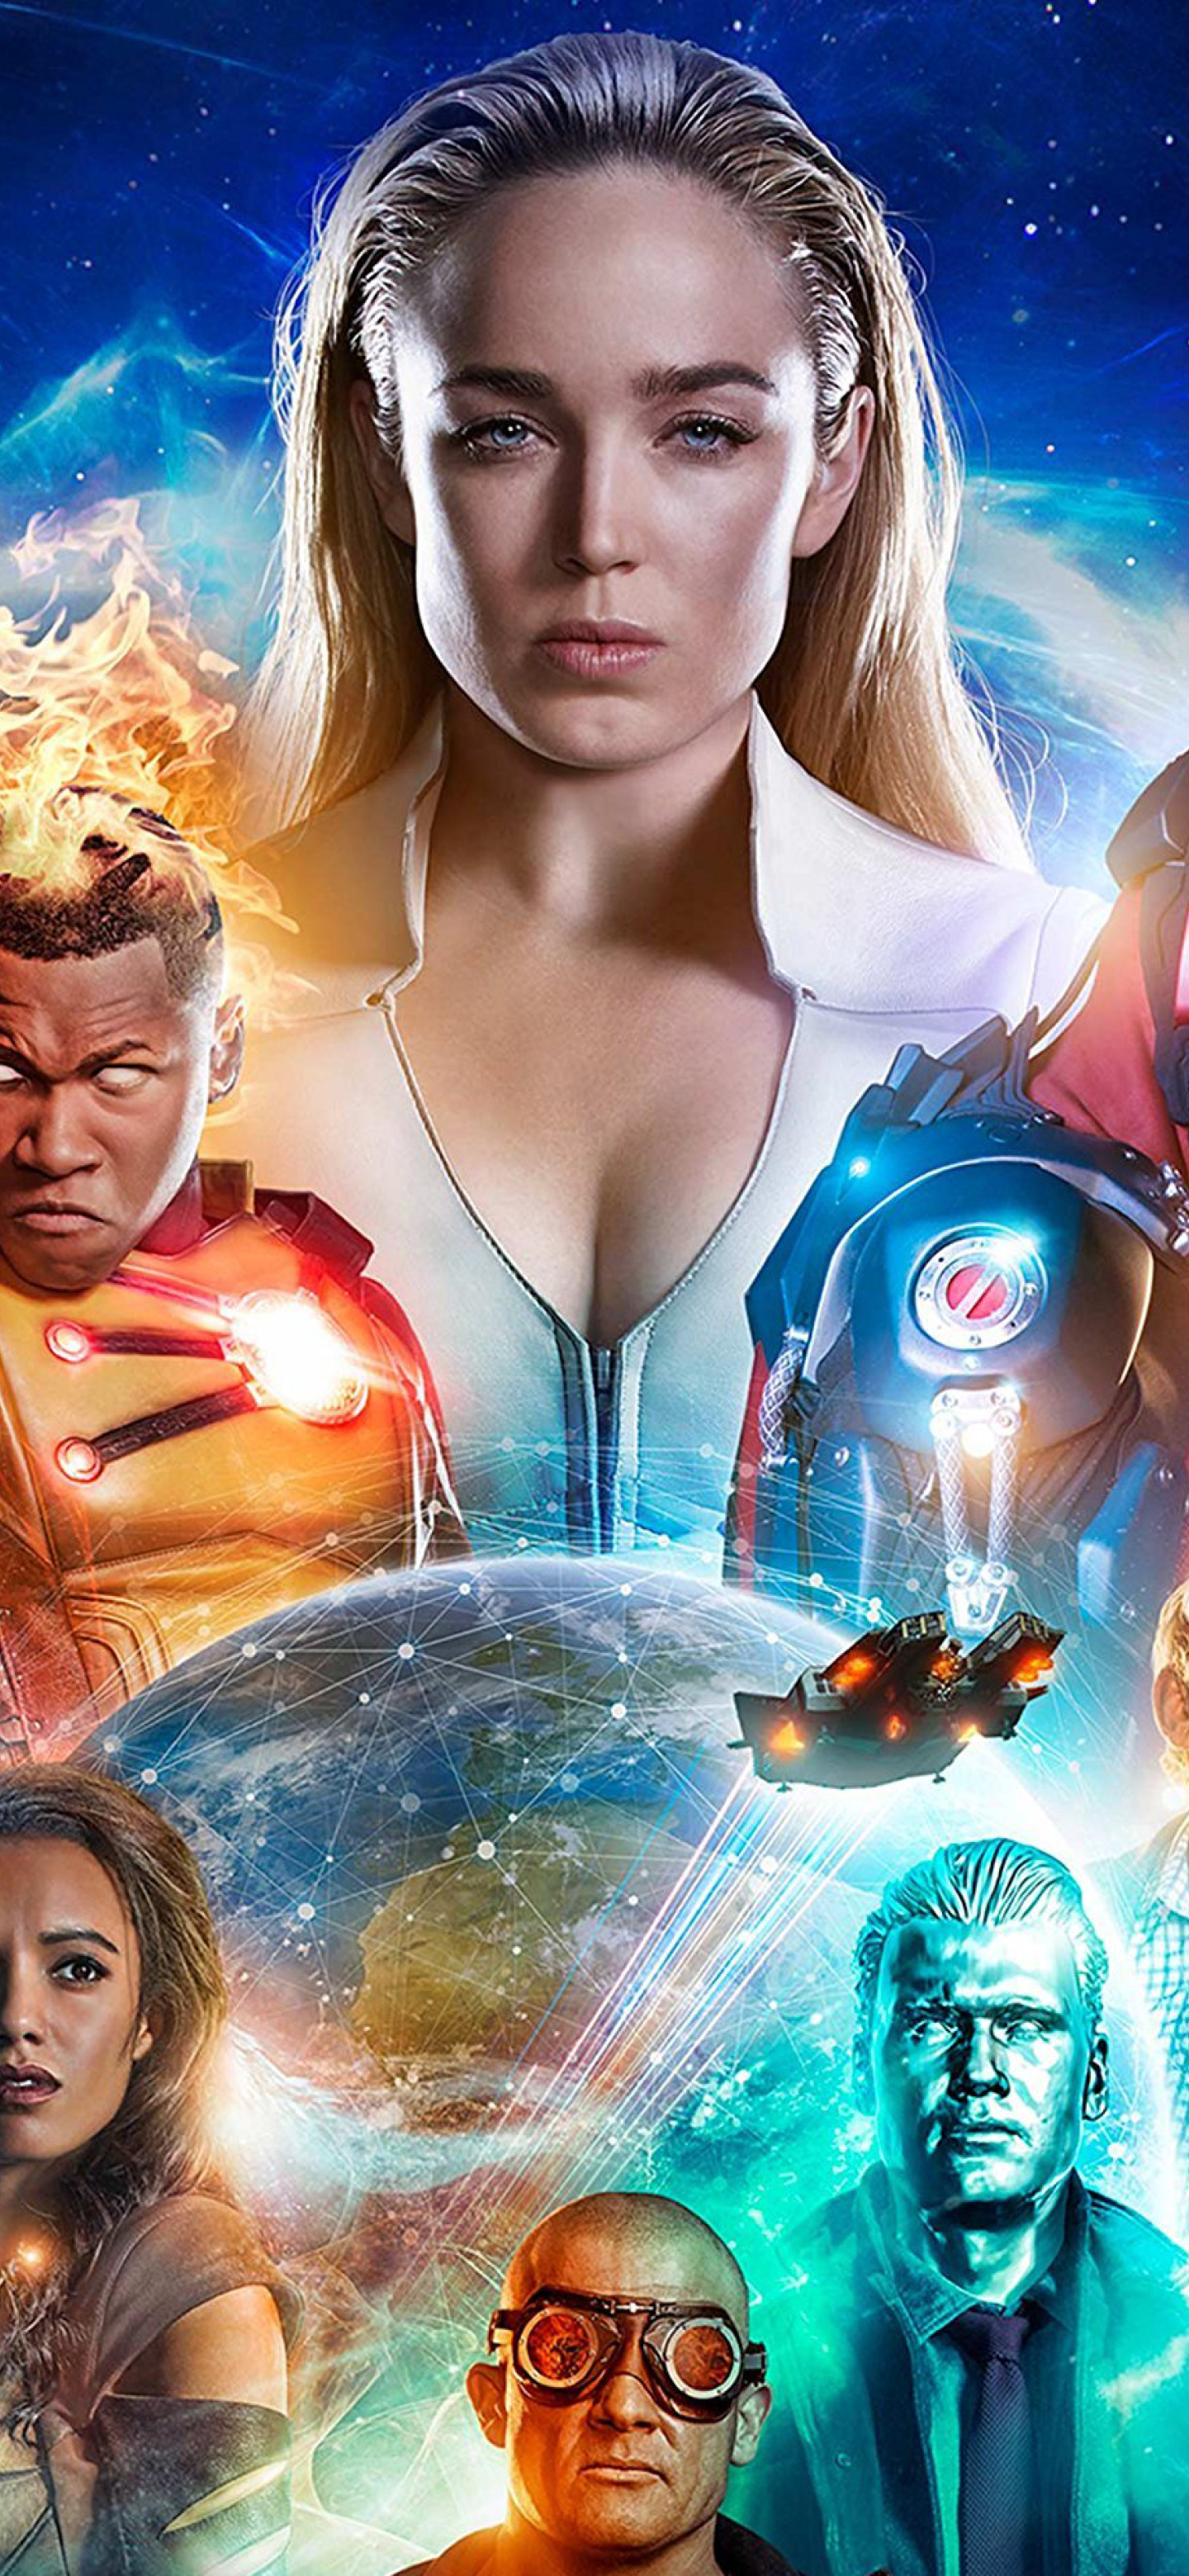 1440x3120 Legends Of Tomorrow 1440x3120 Resolution Wallpaper Hd